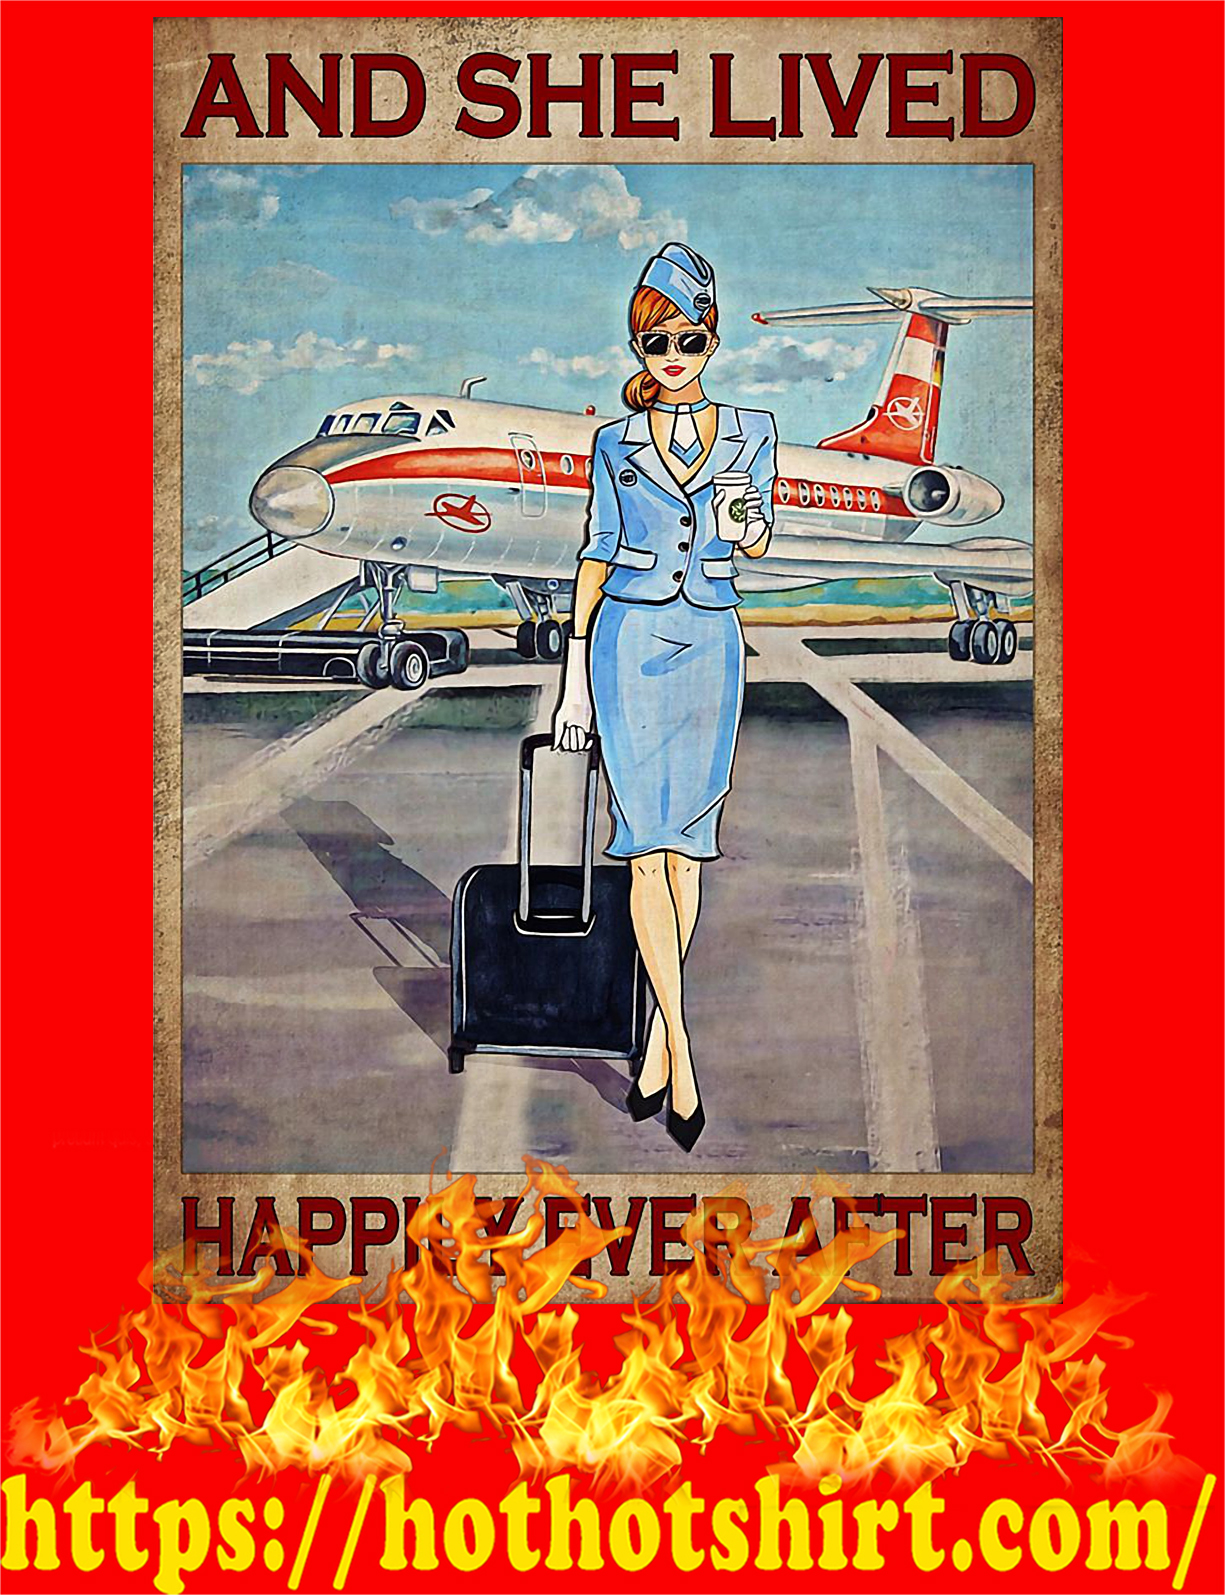 And she lived happily ever after flight attendant poster - style 2